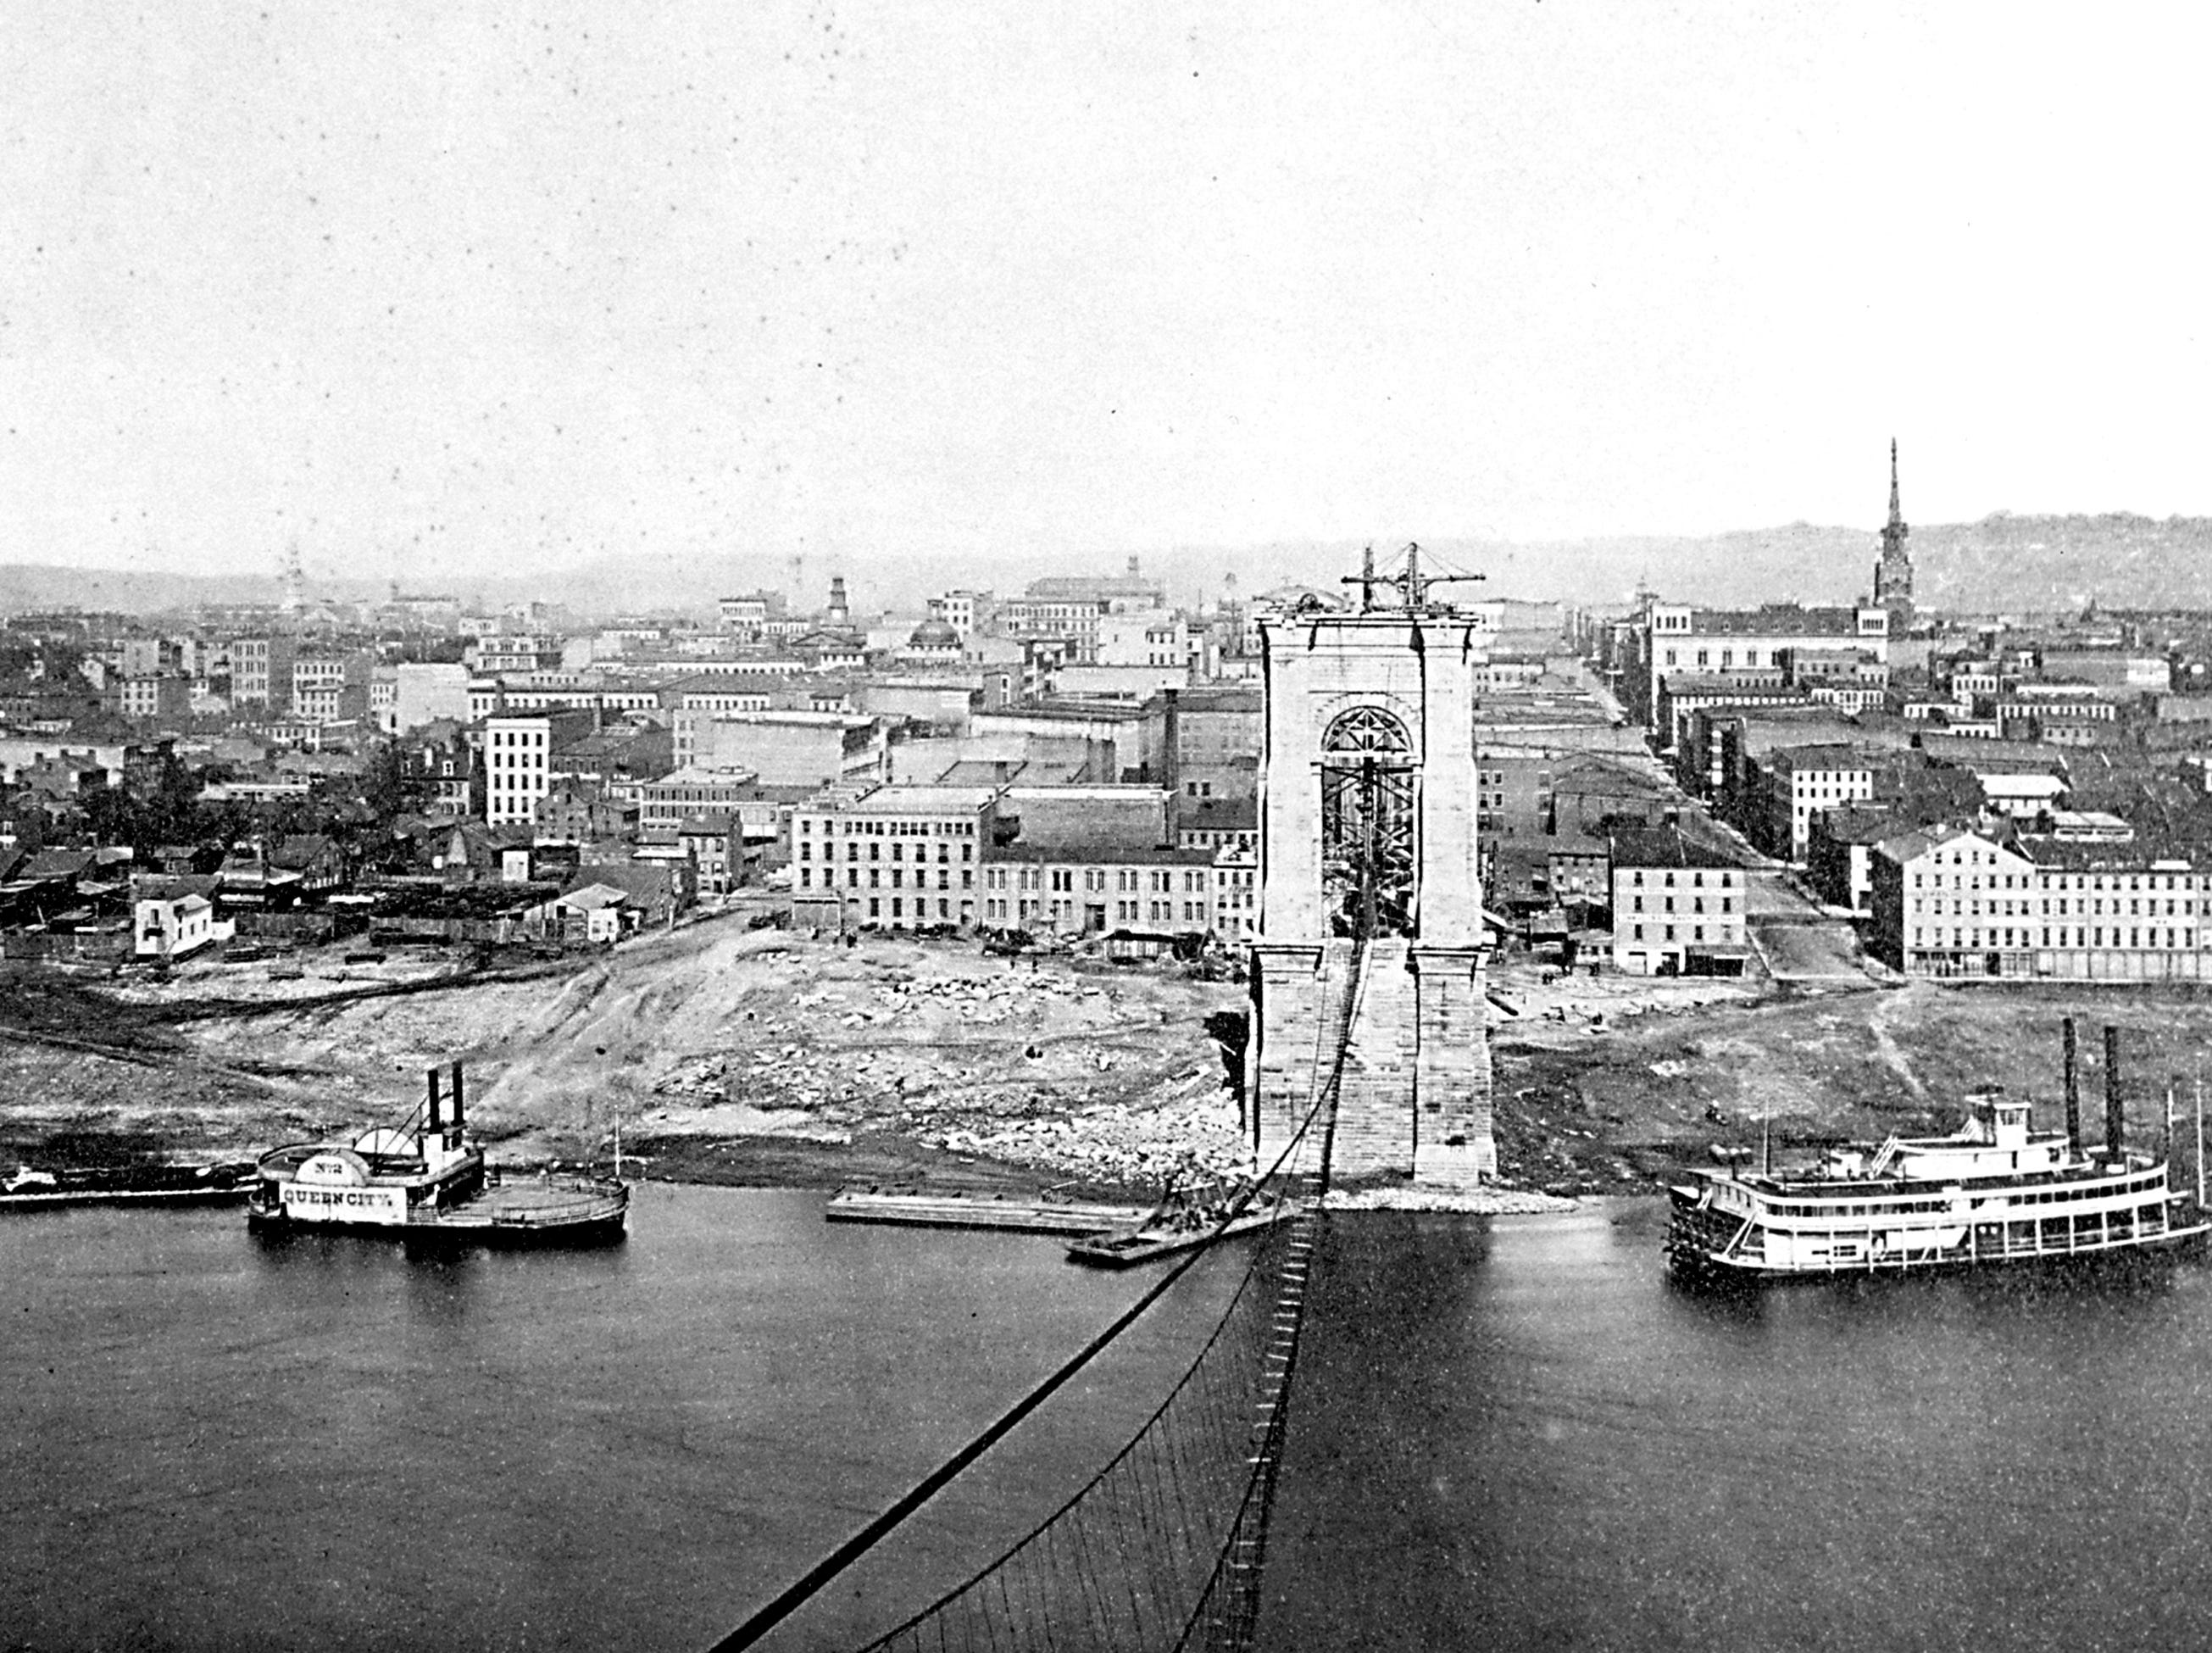 """The incomplete Roebling Suspension Bridge, as seen Oct. 4, 1865. Provided/Cincinnati Museum Center 19th Century 033 SUBJECT: BRIDGES.  SUSPENSION BRIDGE DATE: OCT. 4, 1865 DONOR: JOSEPH R. STERN, 11--08-1965 NEG #'S: A-92-049, B-88-221 ORIG SIZE: 8"""" X 10"""", B&W SCAN DATE: 07-19-99 NOTES: ( ON BACK ); PHOTO OF INCOMPLETED SUSPENSION BRIDGE SHOWING THE FIRST CABLE WHICH HAD BEEN """"STRUNG OVER"""", AND THE """"FOOT BRIDGE"""" BELOW WHICH HAD JUST BEEN COMPLETED. OCTOBER 4, 1865. ALSO ON BACK- MAYHEW PHOTOGRAPHERS, 128 W. 5TH ST., CINCINNATI 2, OHIO. REORDER # A2646"""